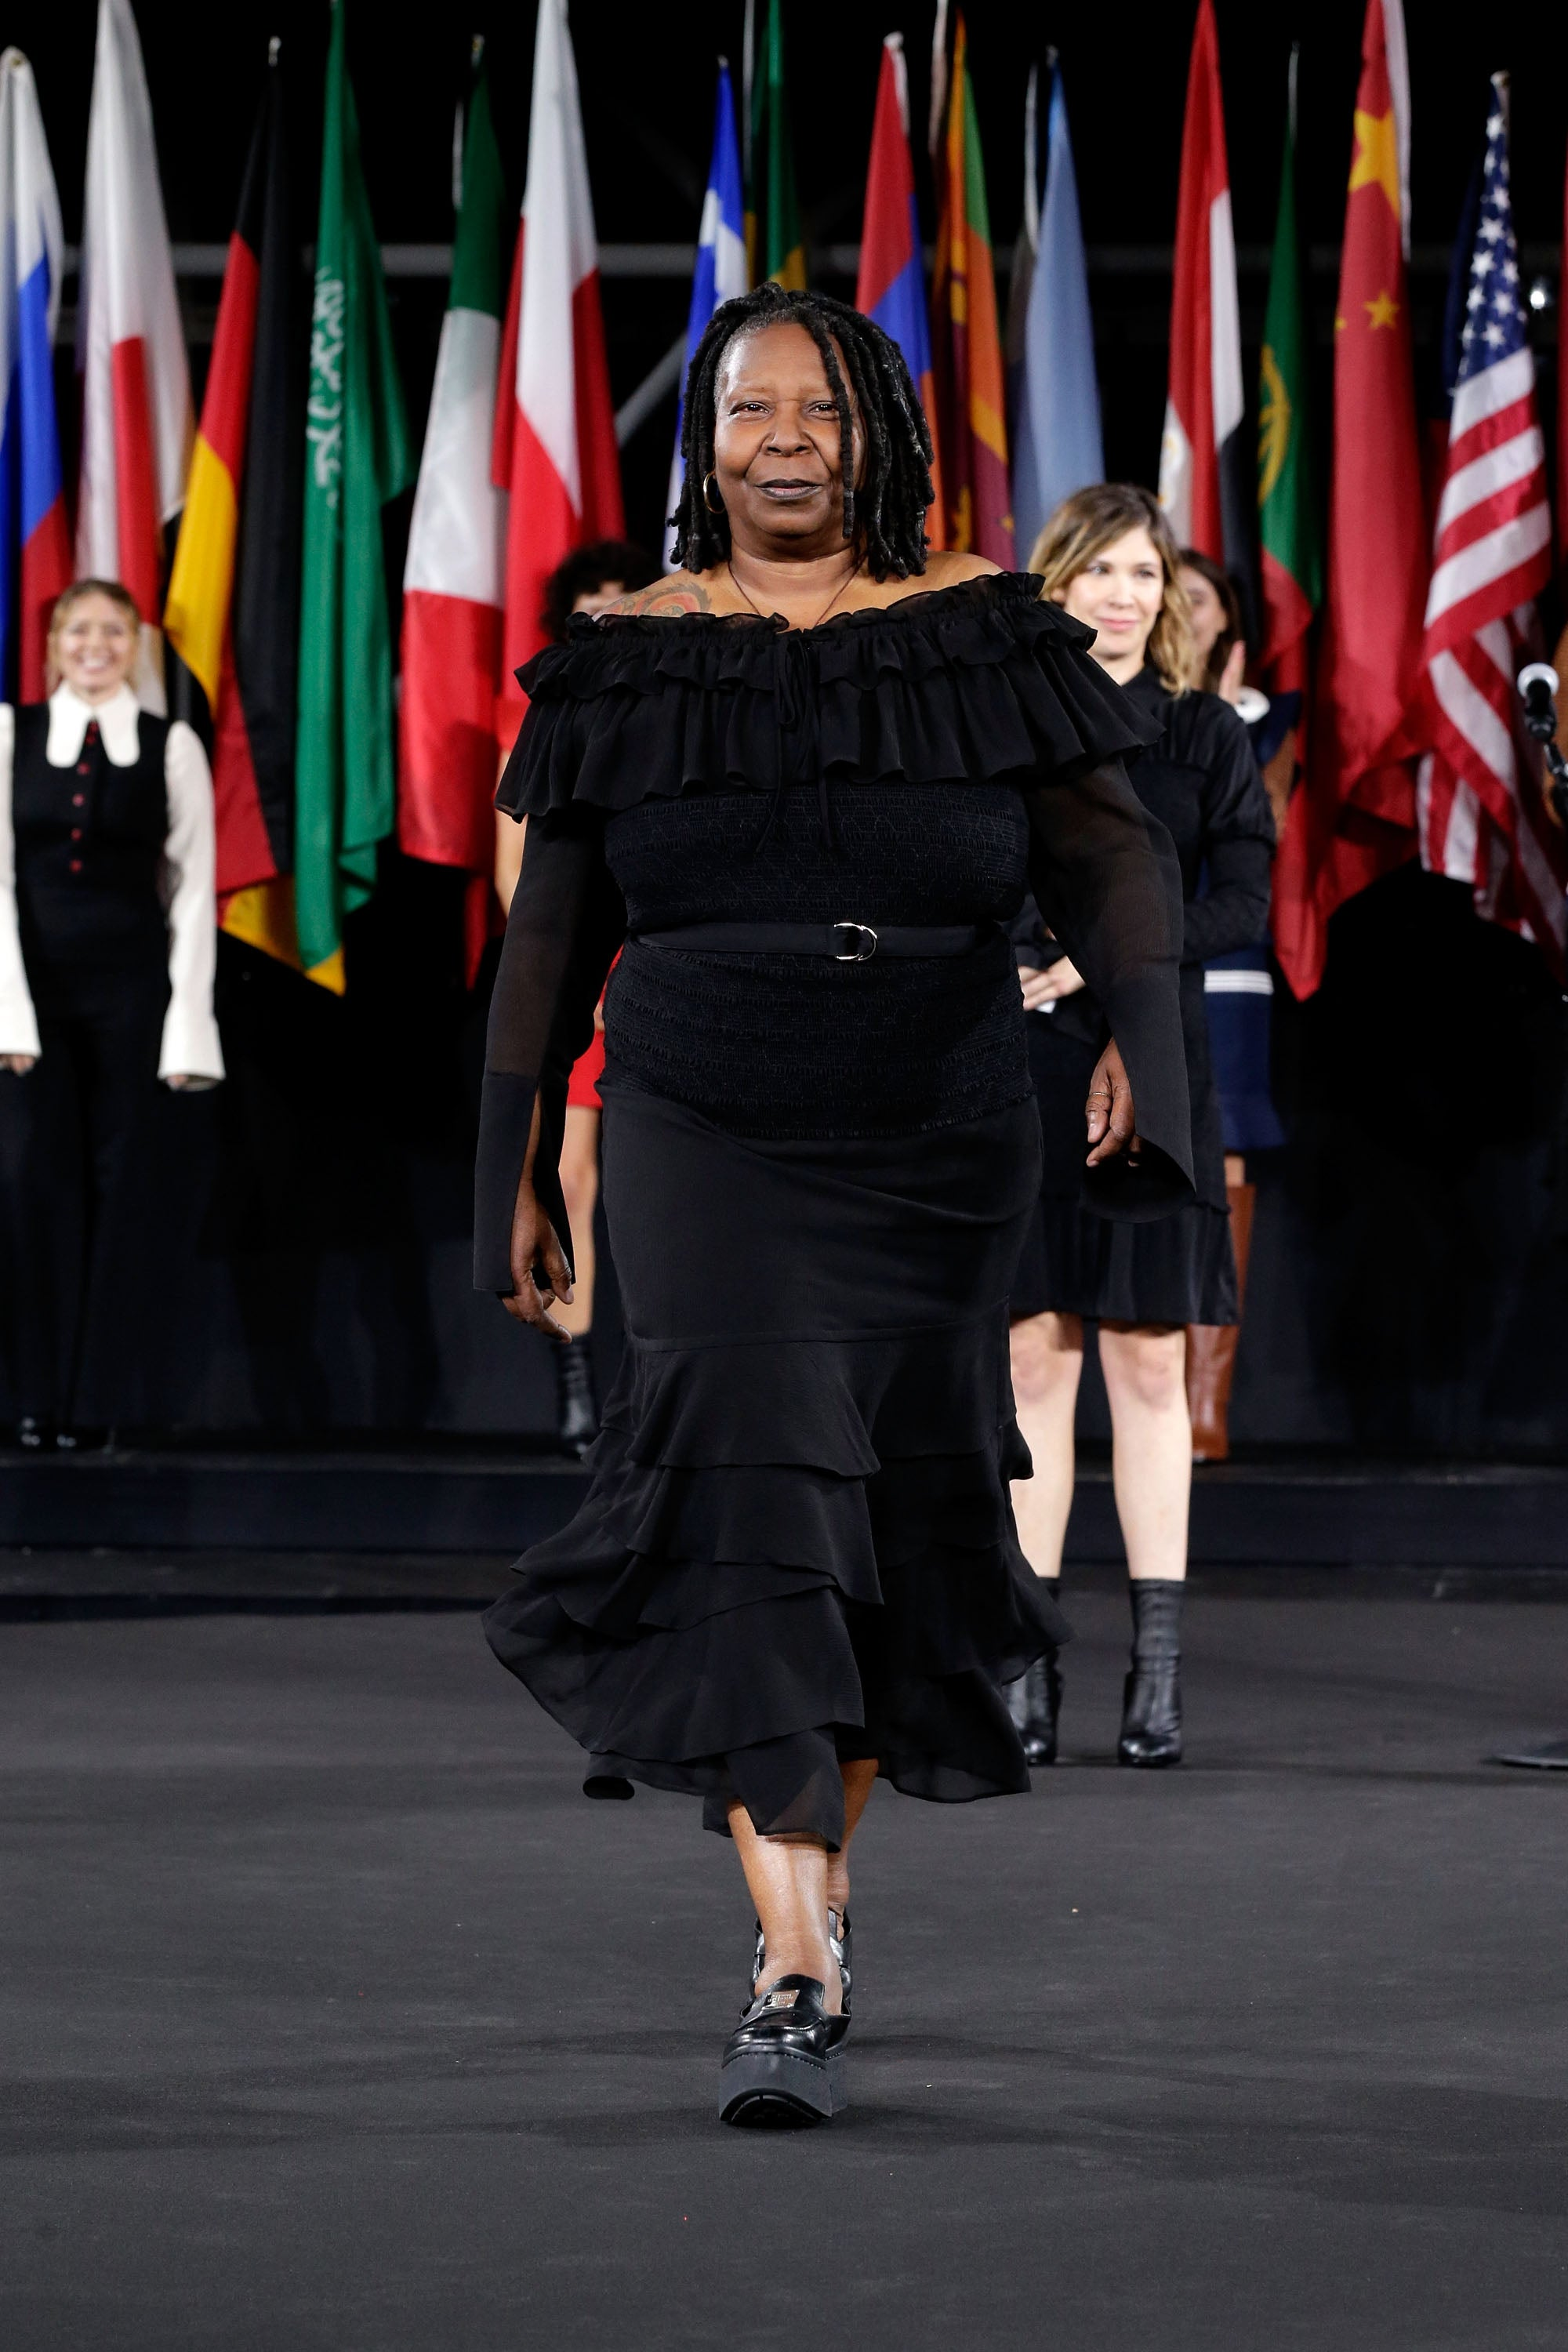 Whoopi Goldberg Walks in Opening Ceremony Show